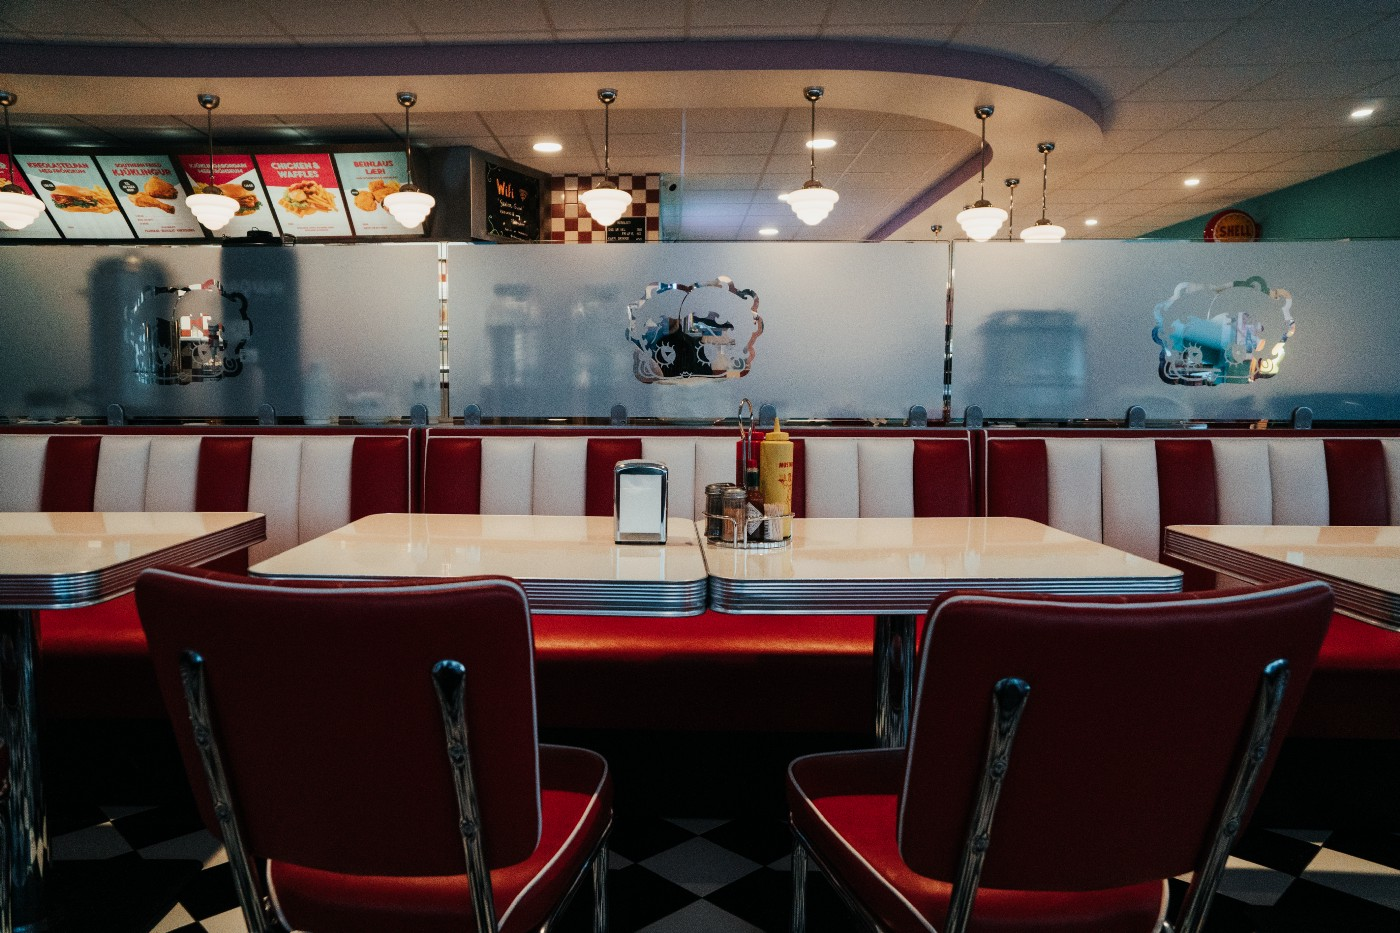 an empty booth at an old-school diner with condiments and a napkin dispenser